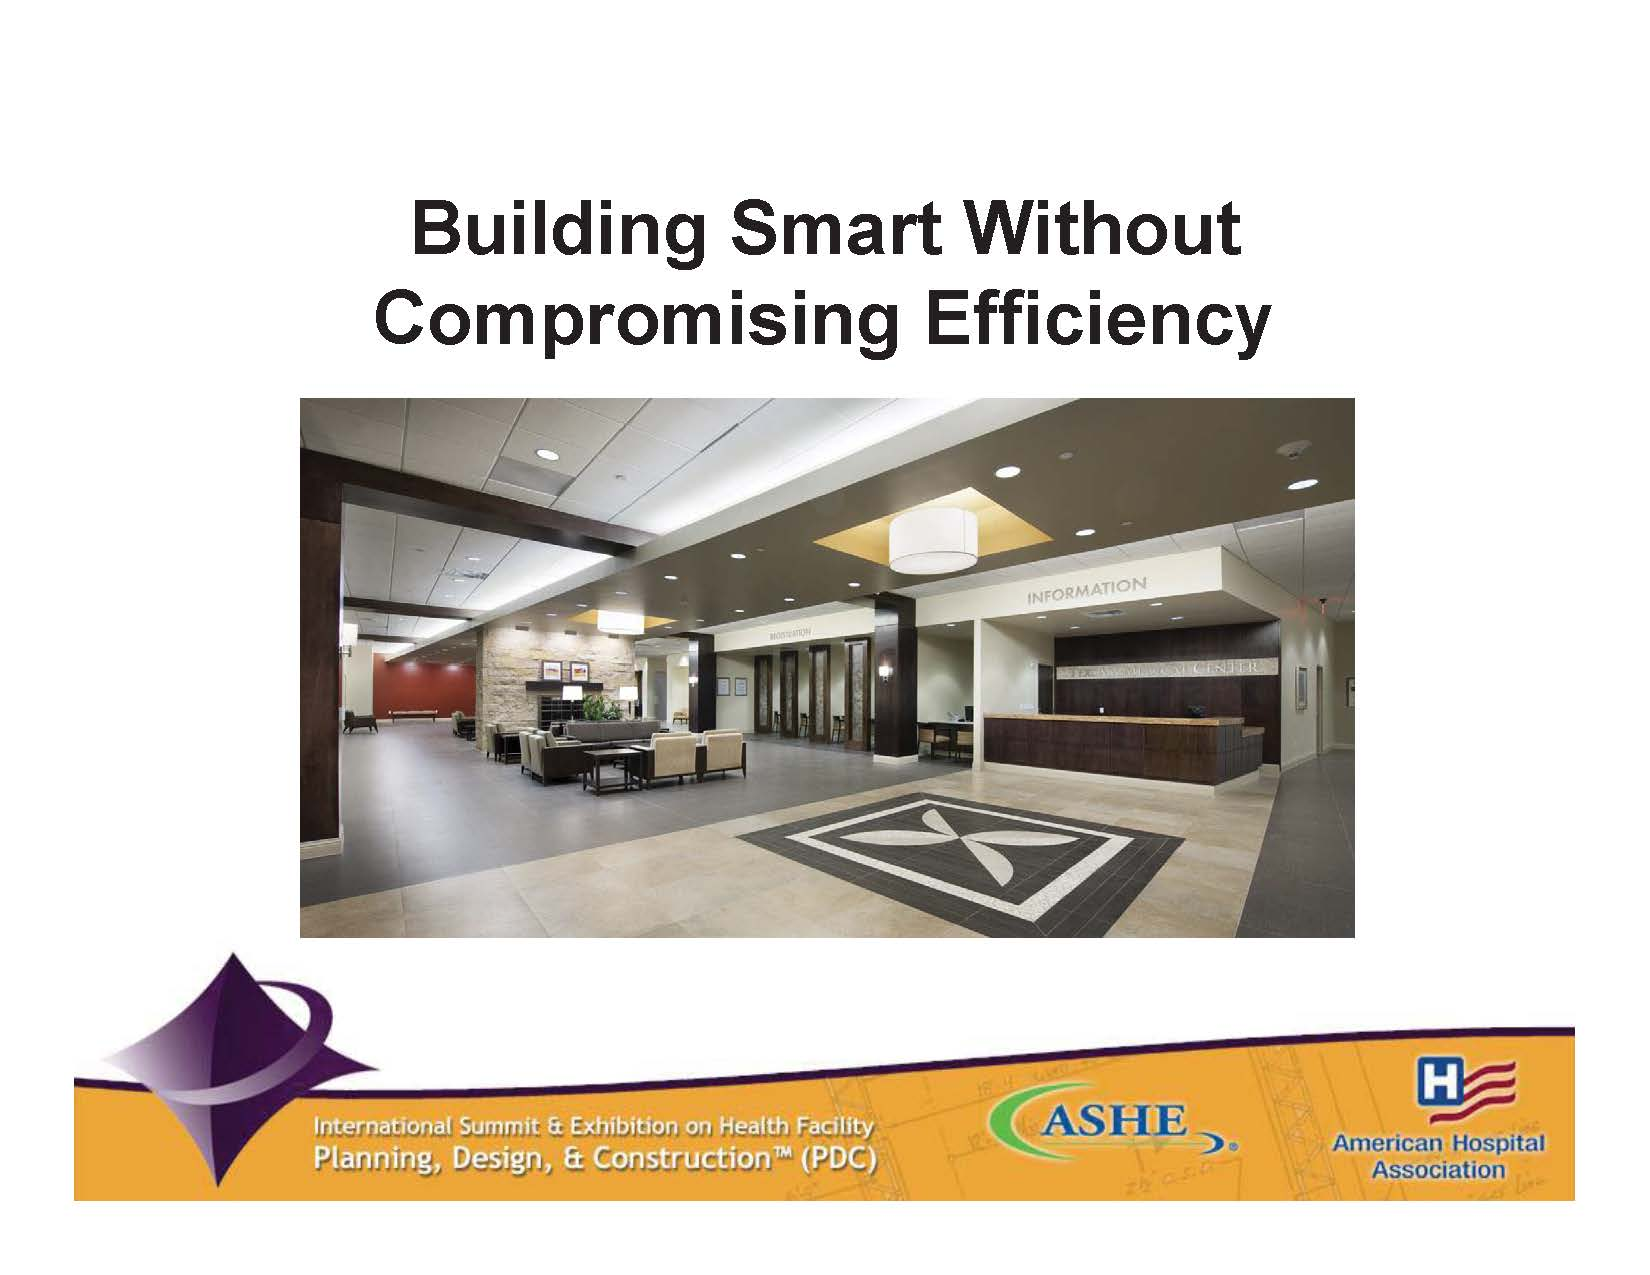 Building Smart Without Compromising Efficiency    Bill Seed, Angela Lee, and Debajyoti Pati   Healthcare Facility Planning  ,   Design, and Construction (PDC) Conference